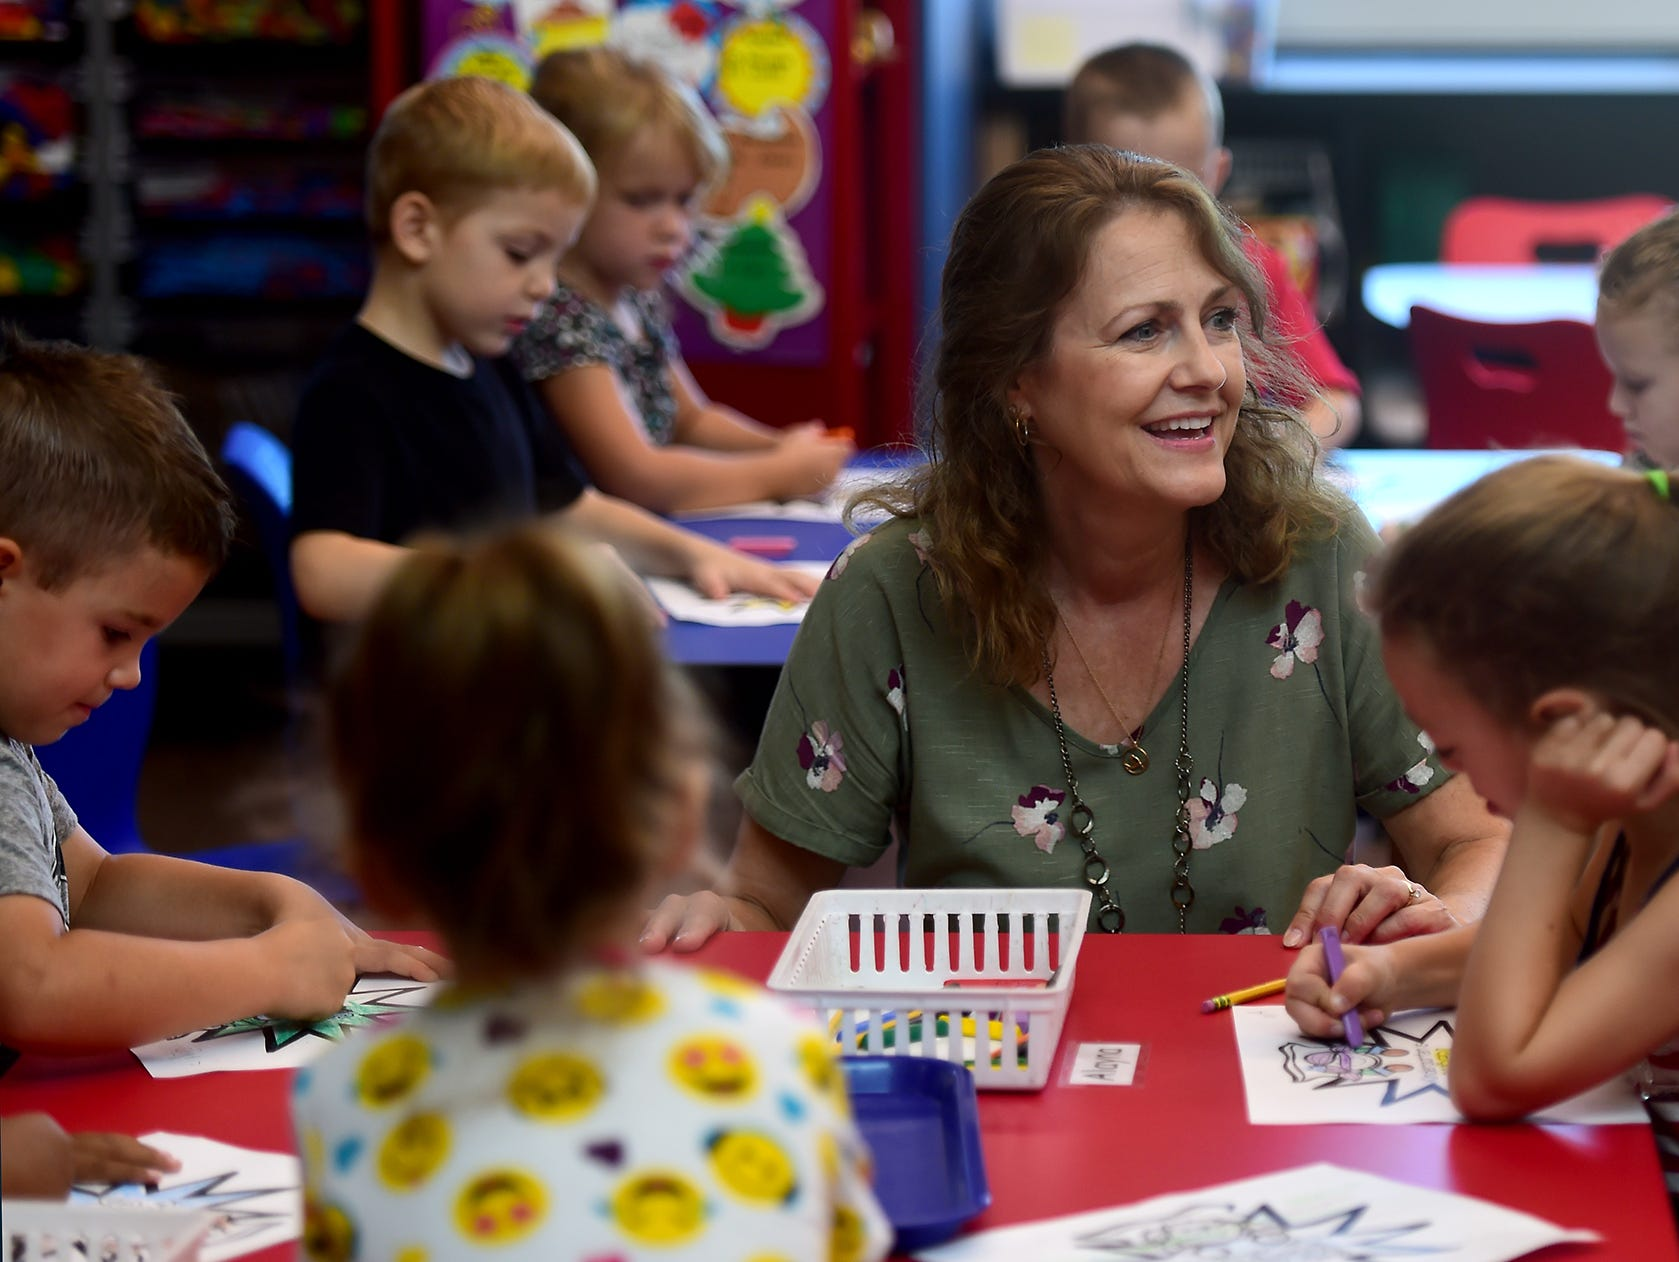 Kindergarten teacher Mrs. Carolyn Kisloski with students during the first day of classes at Owego Elementary School, Owego, Wednesday, September 5, 2018.